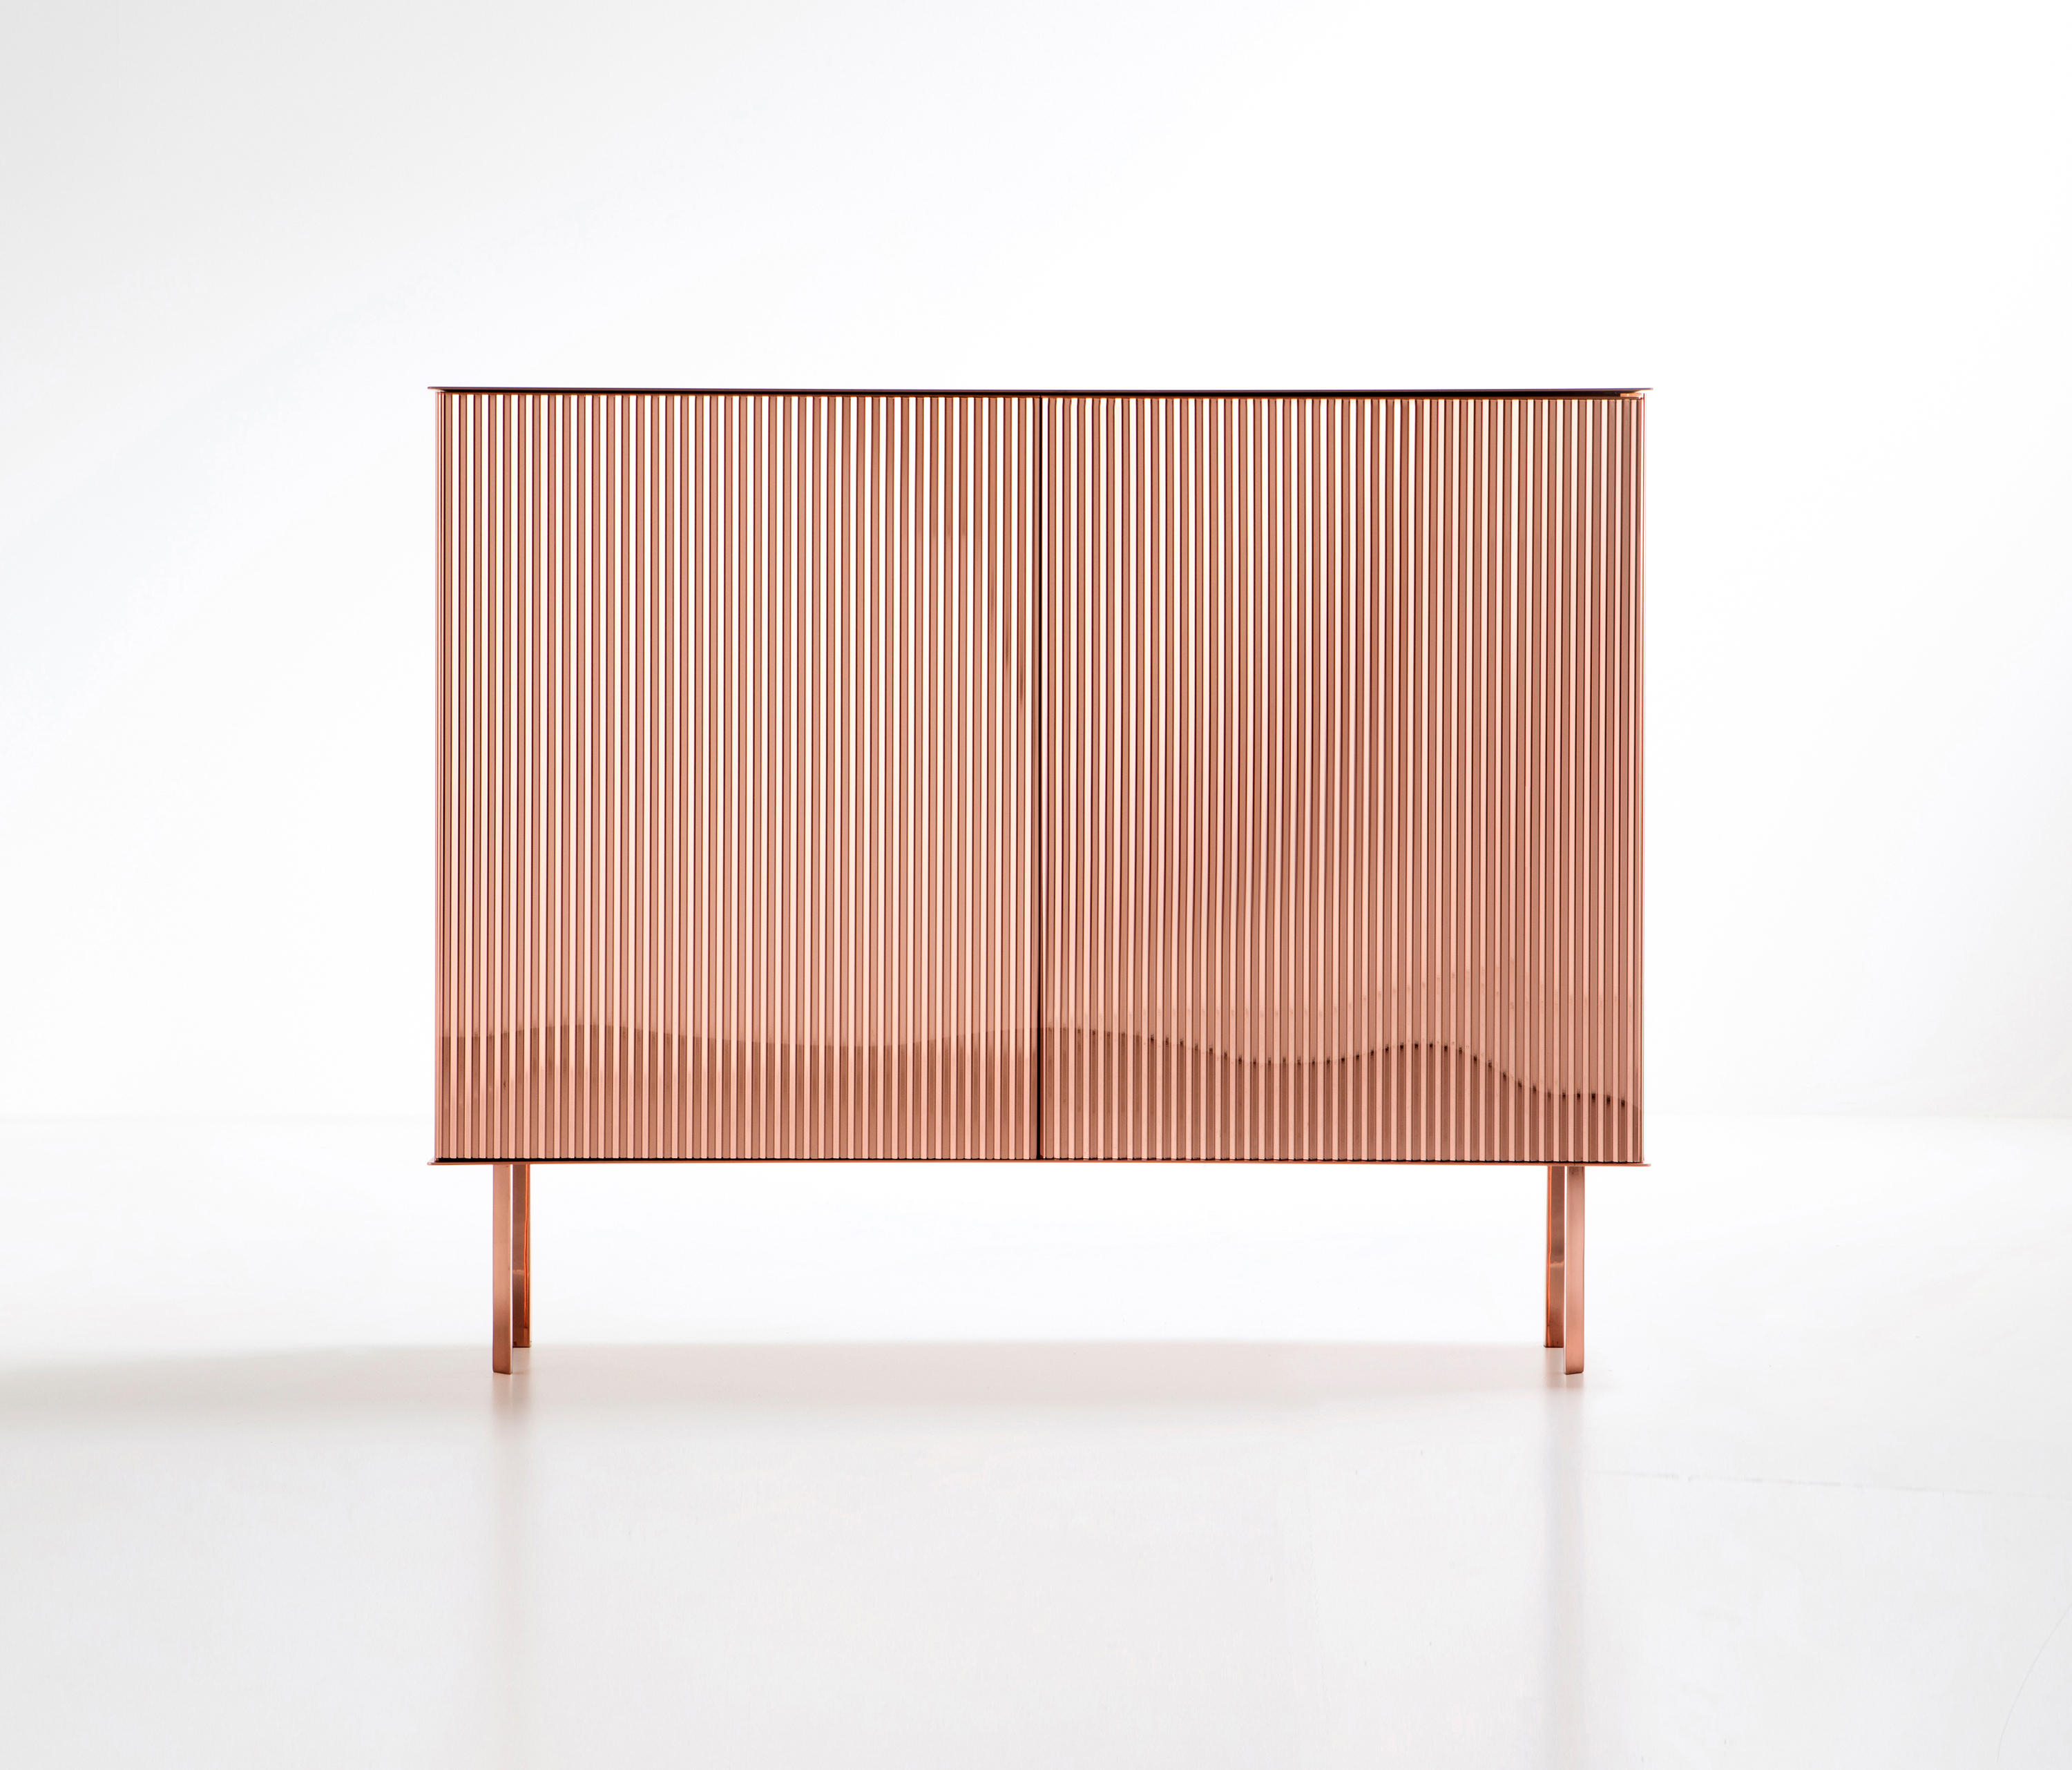 Elizabeth – Sideboards / Kommoden Von De Castelli | Architonic Intended For Castelli Sideboards (View 6 of 30)